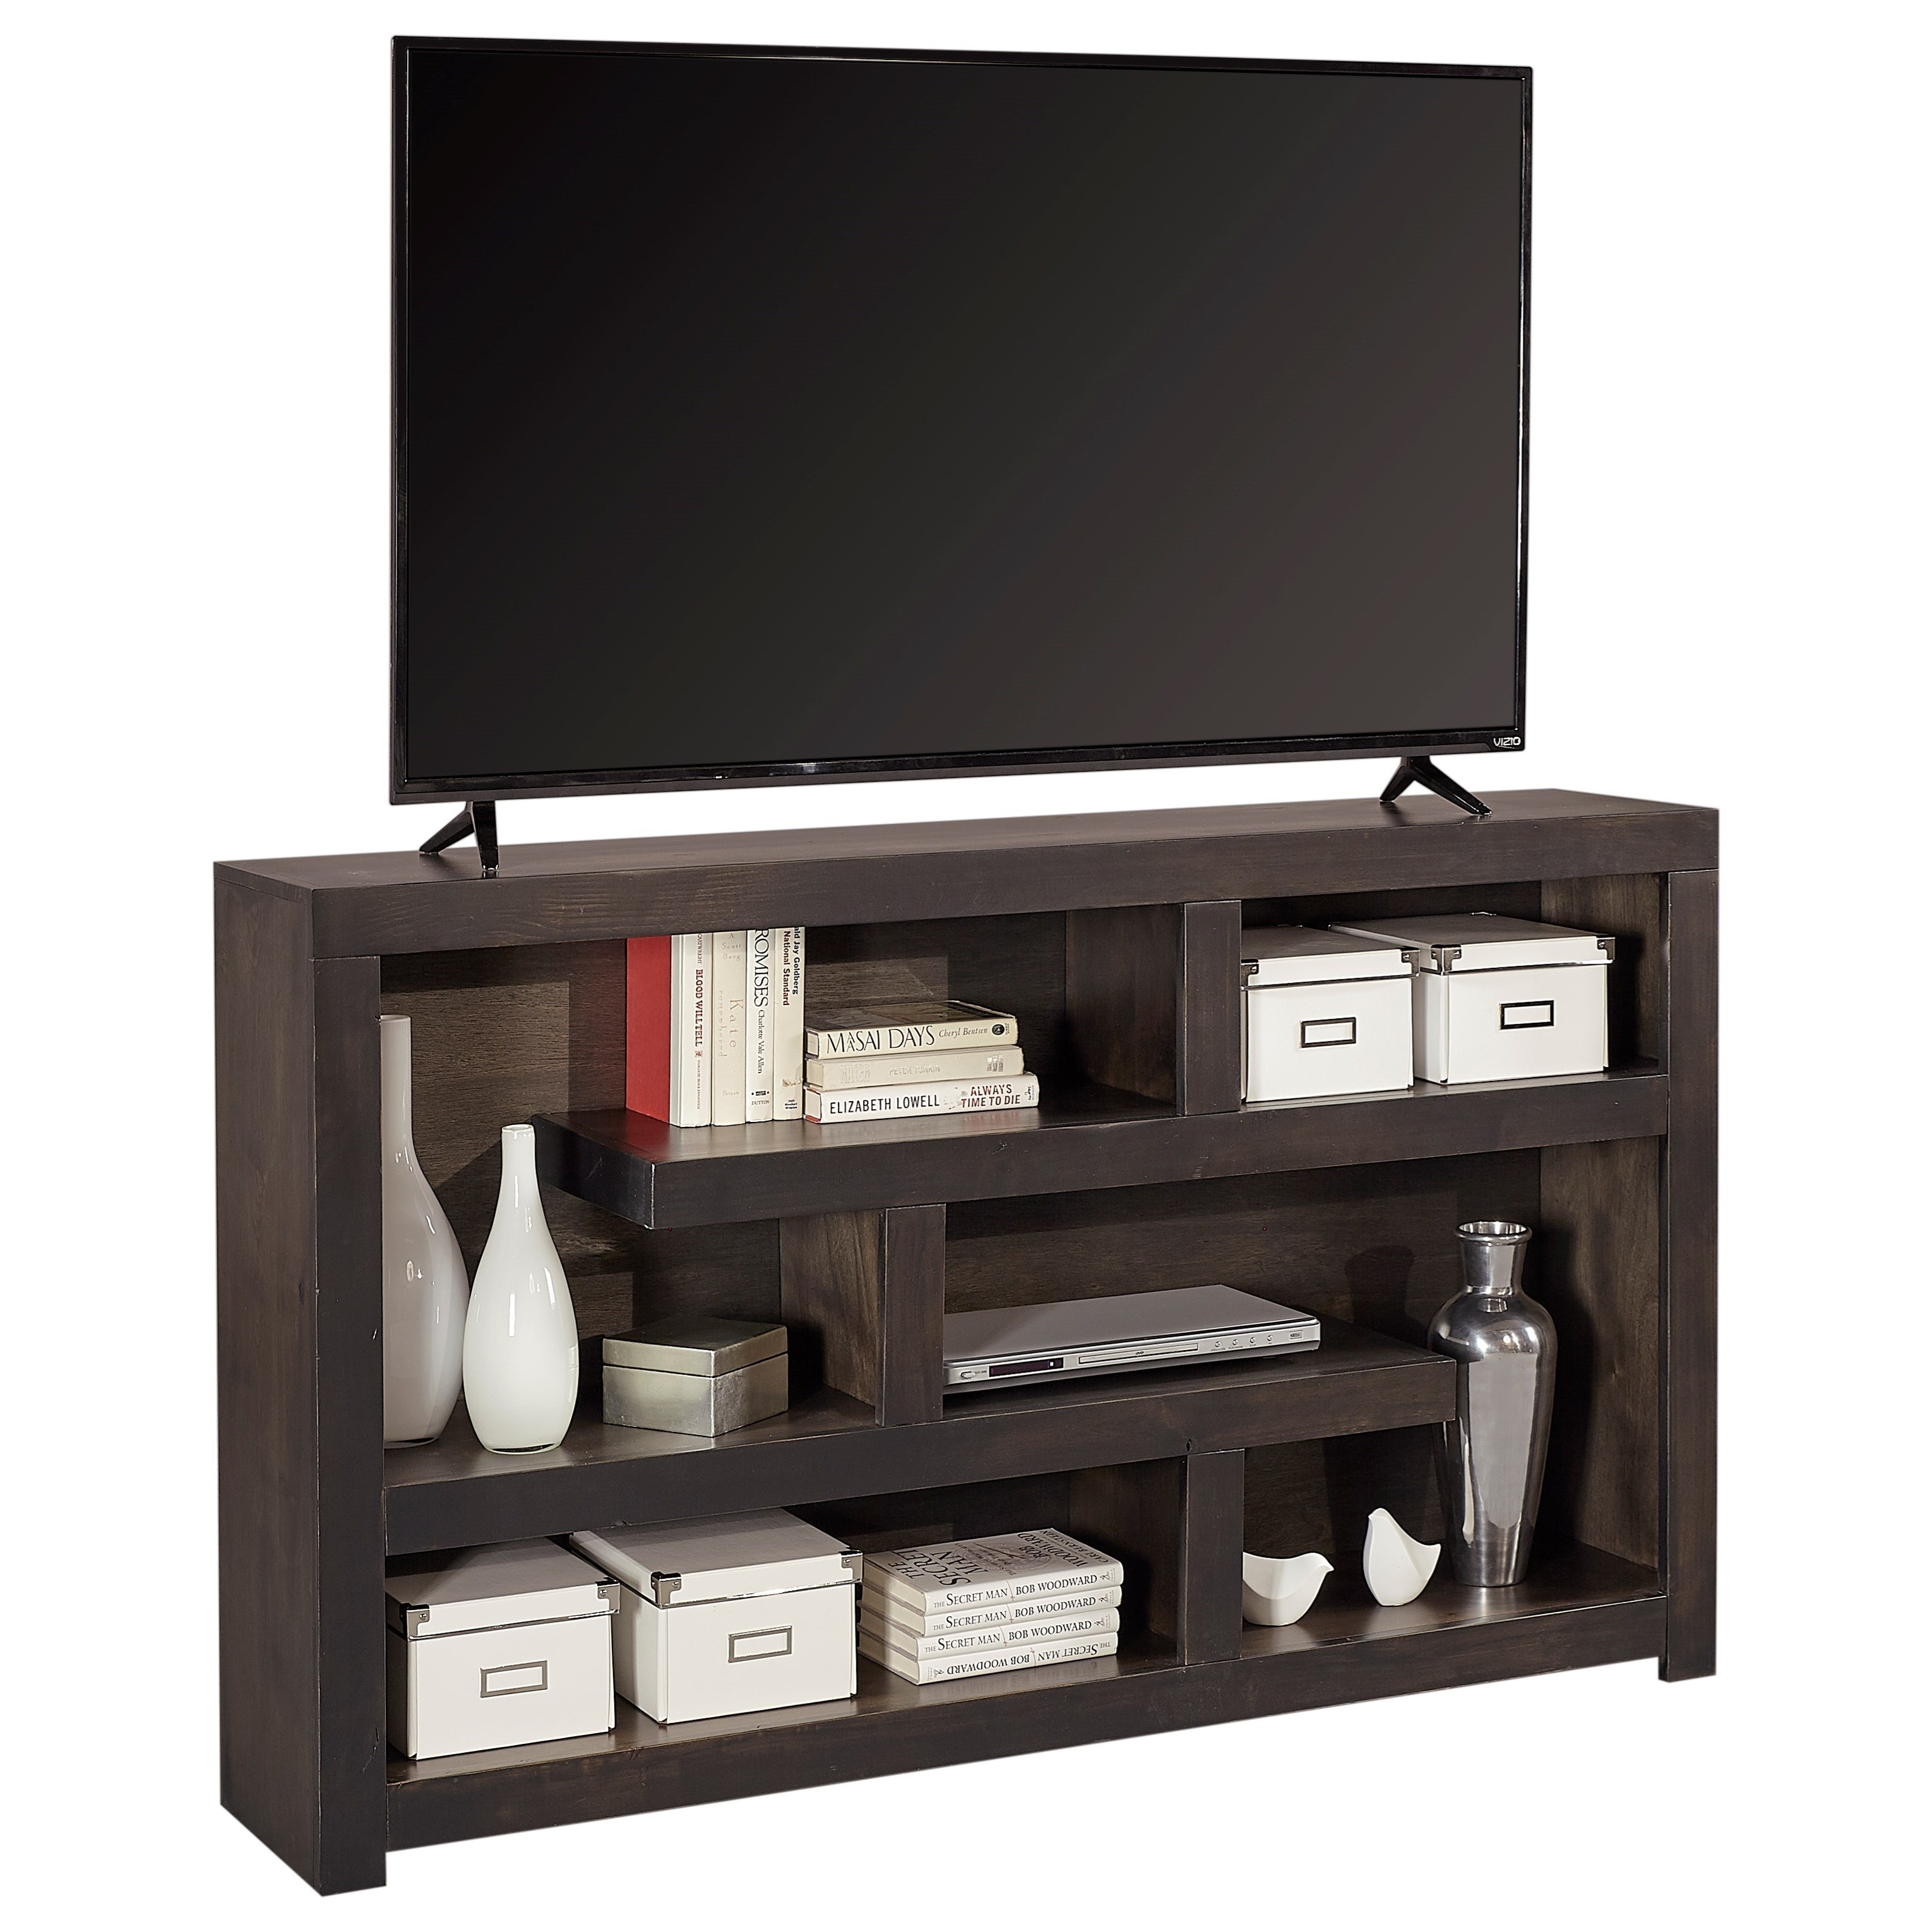 "Avery Loft 60"" TV Console by Aspenhome at Walker's Furniture"